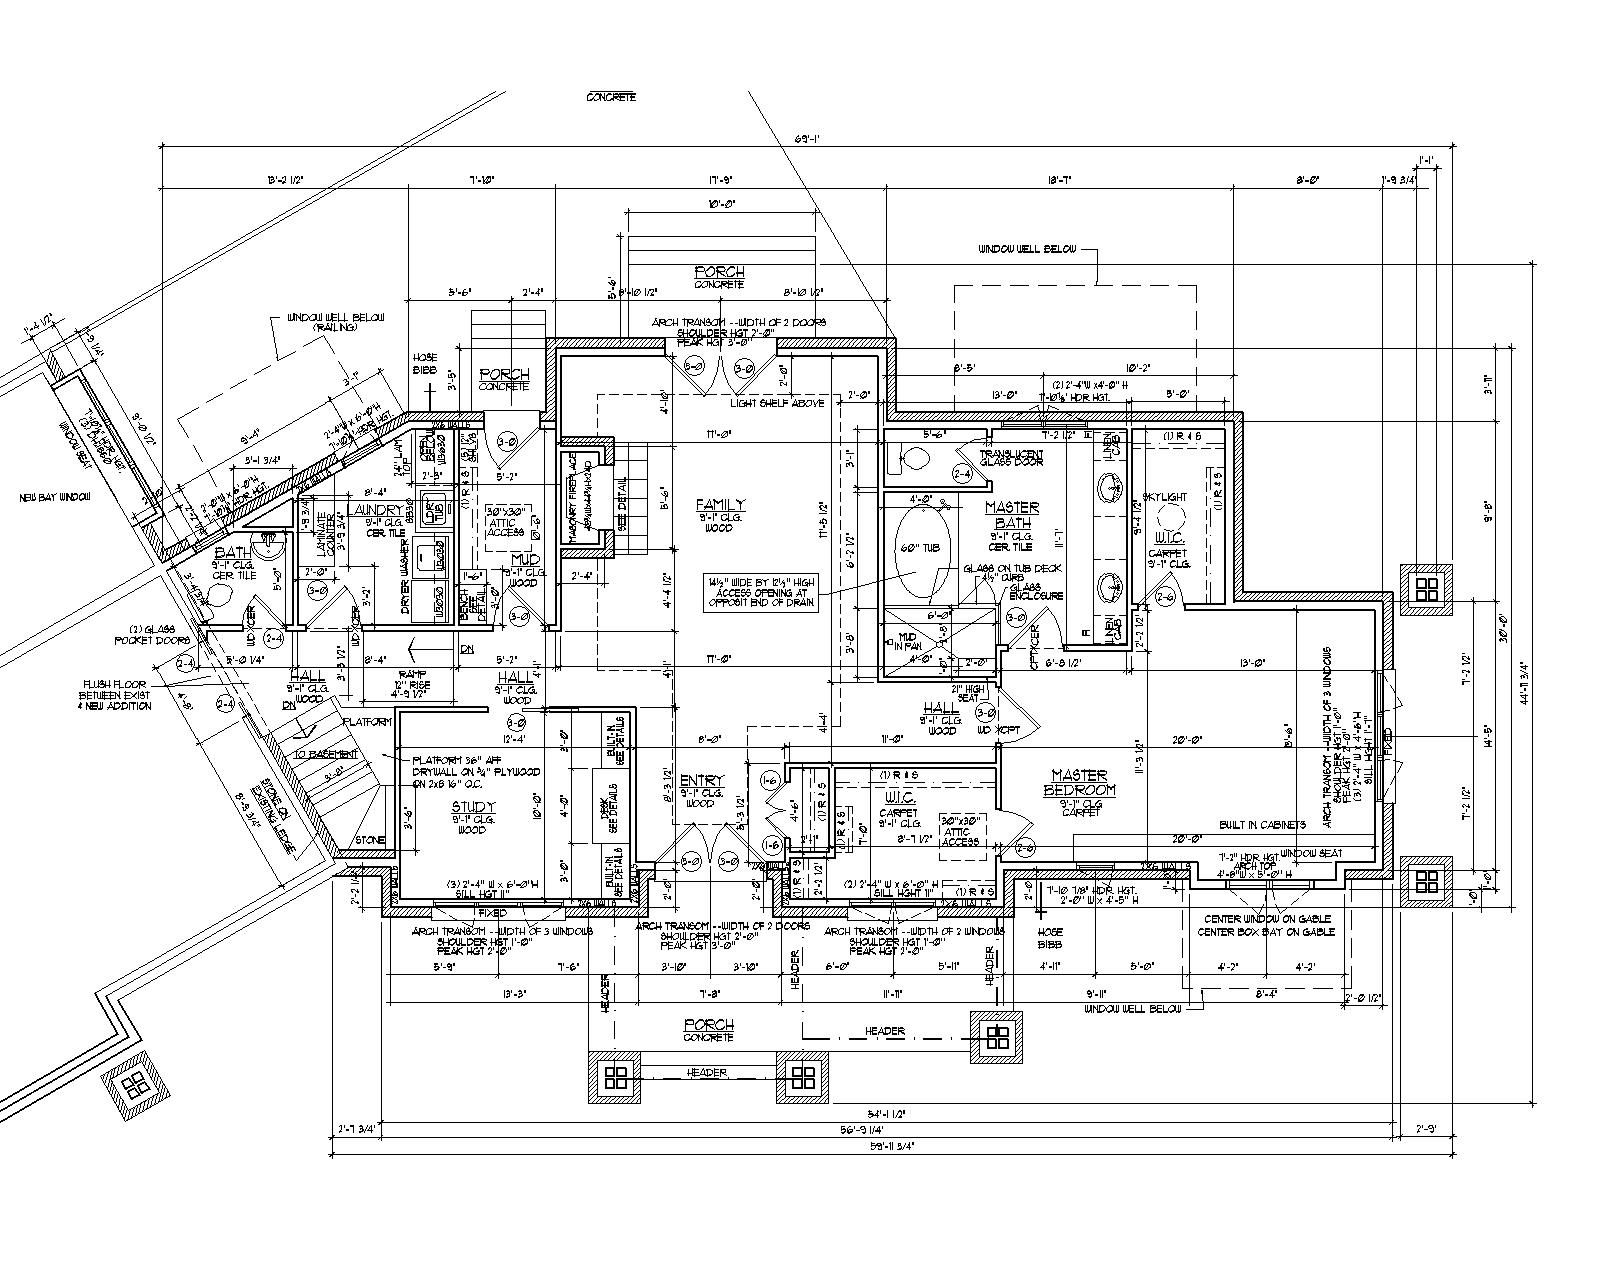 2d autocad house plans residential building drawings cad for Residential blueprints